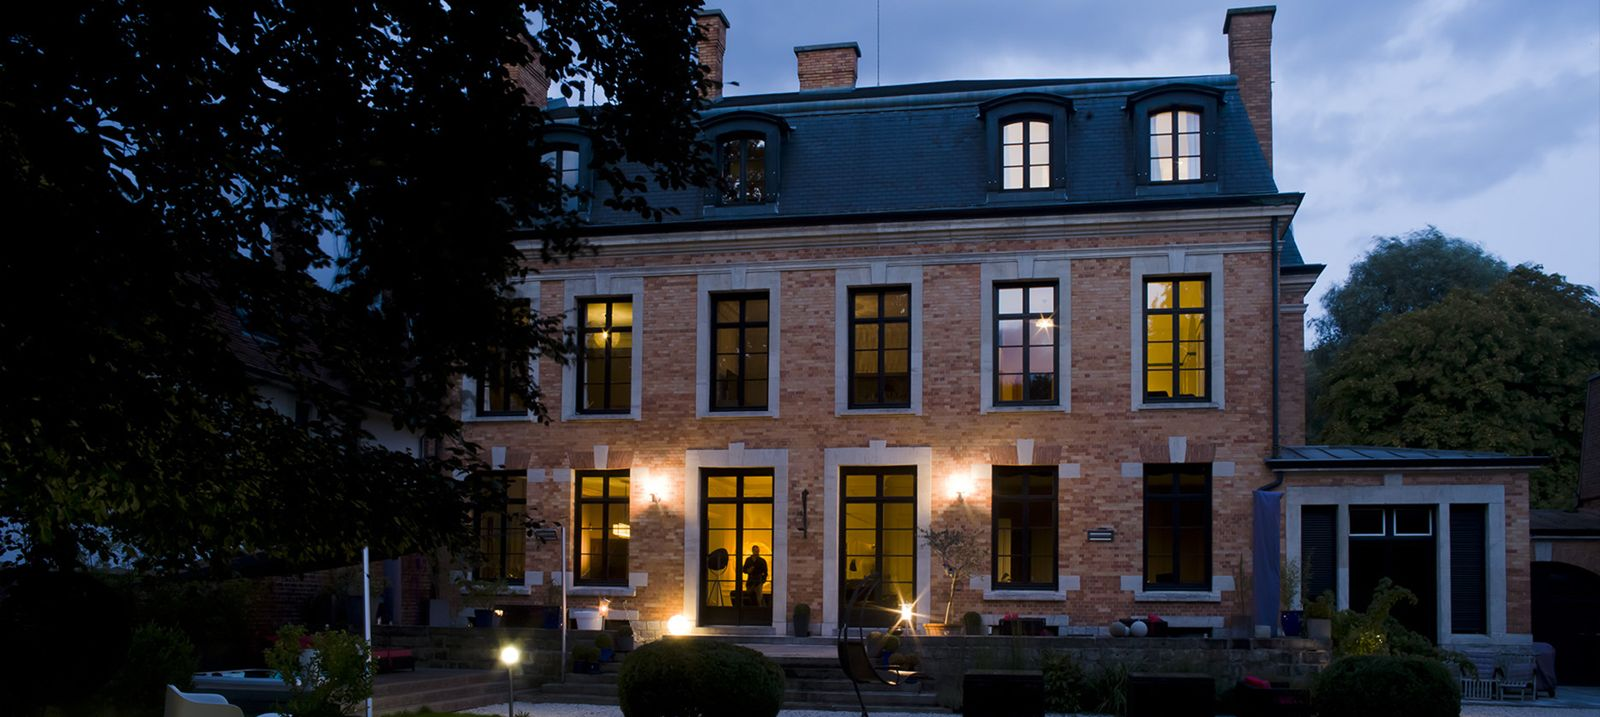 Maison d hote lille avie home for Chambre d hote lille